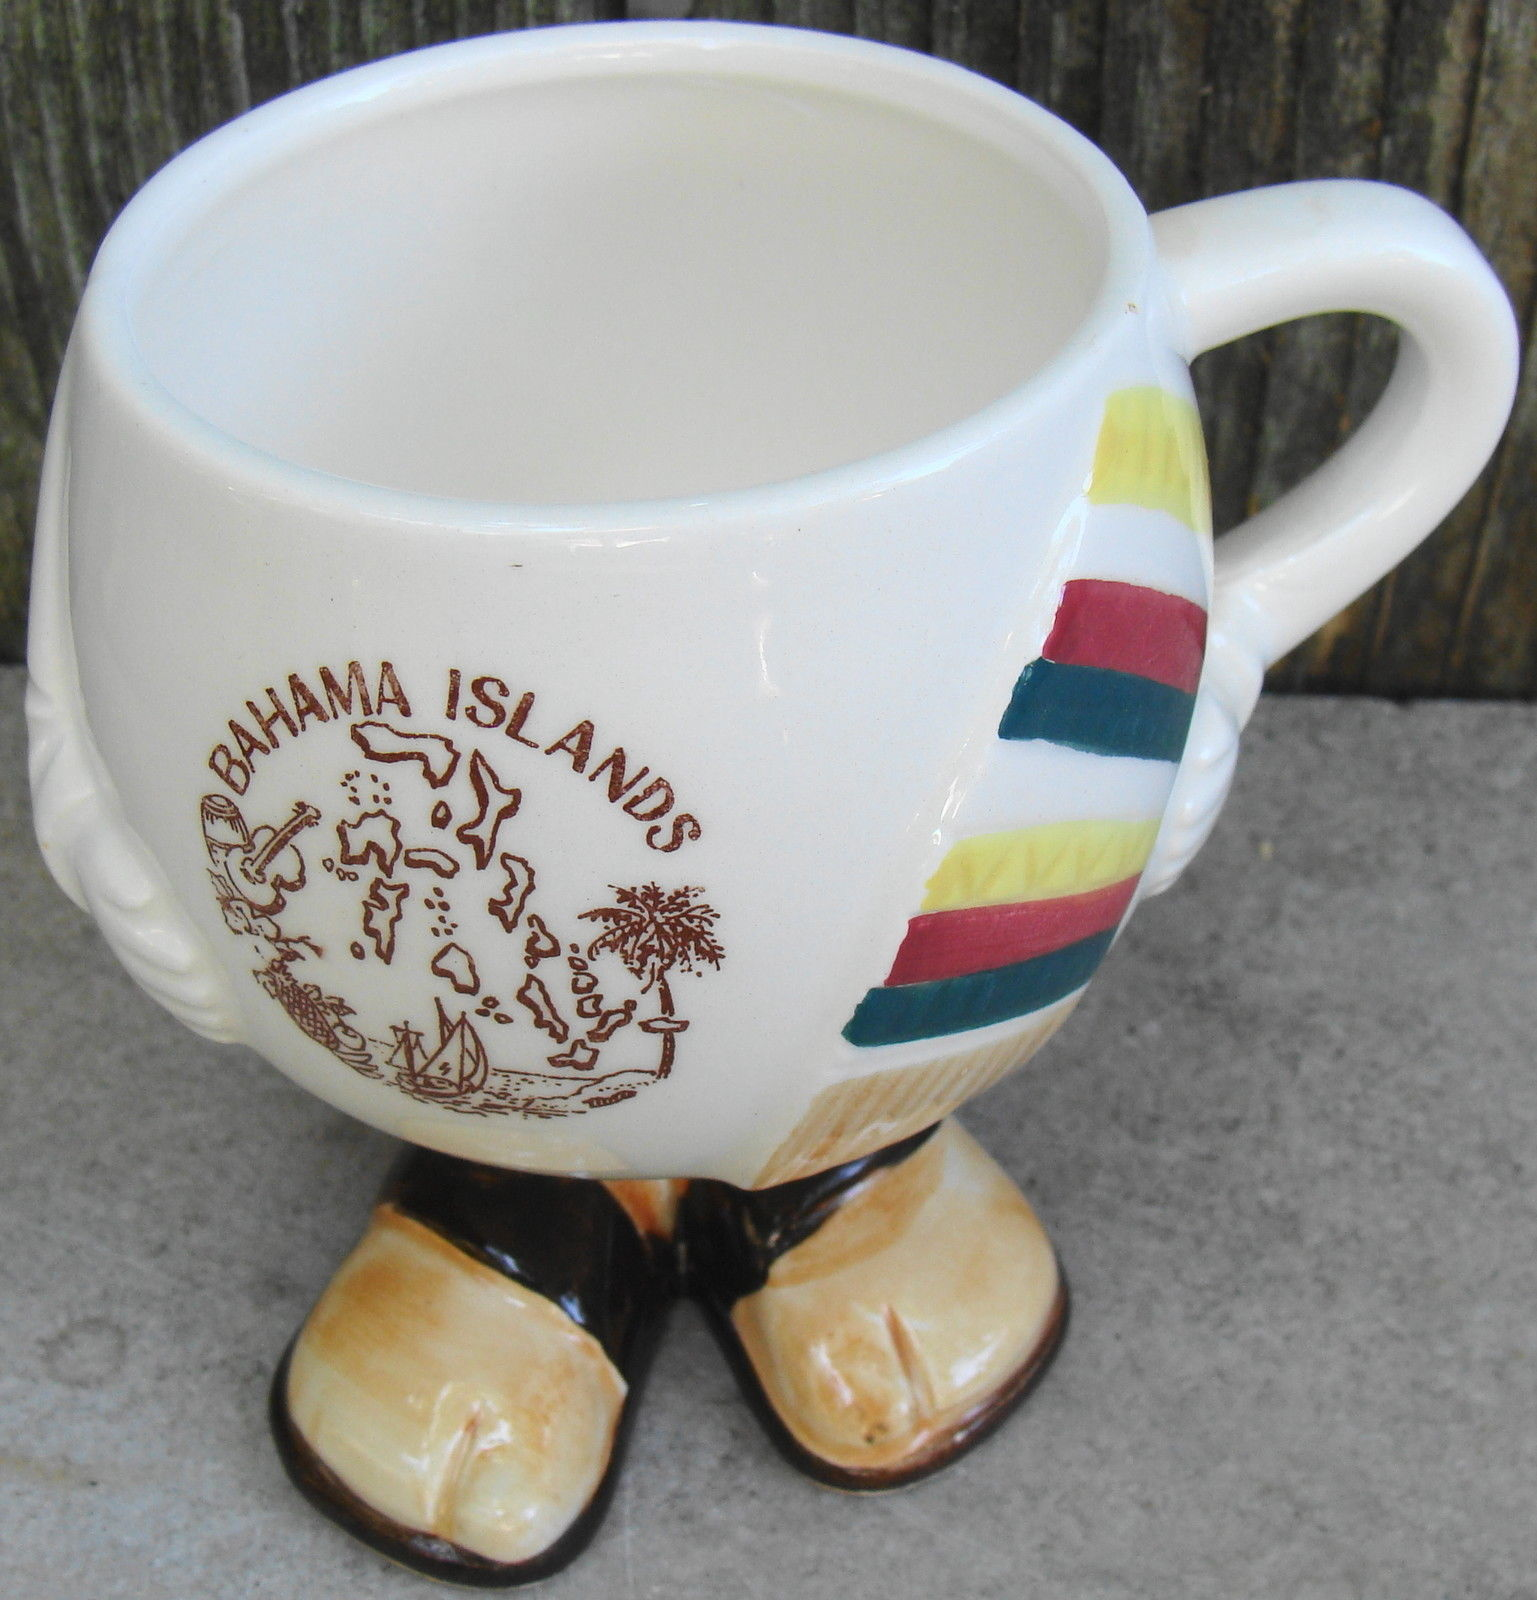 Primary image for Bahama Islands Body w Feet Mug Cup Vintage